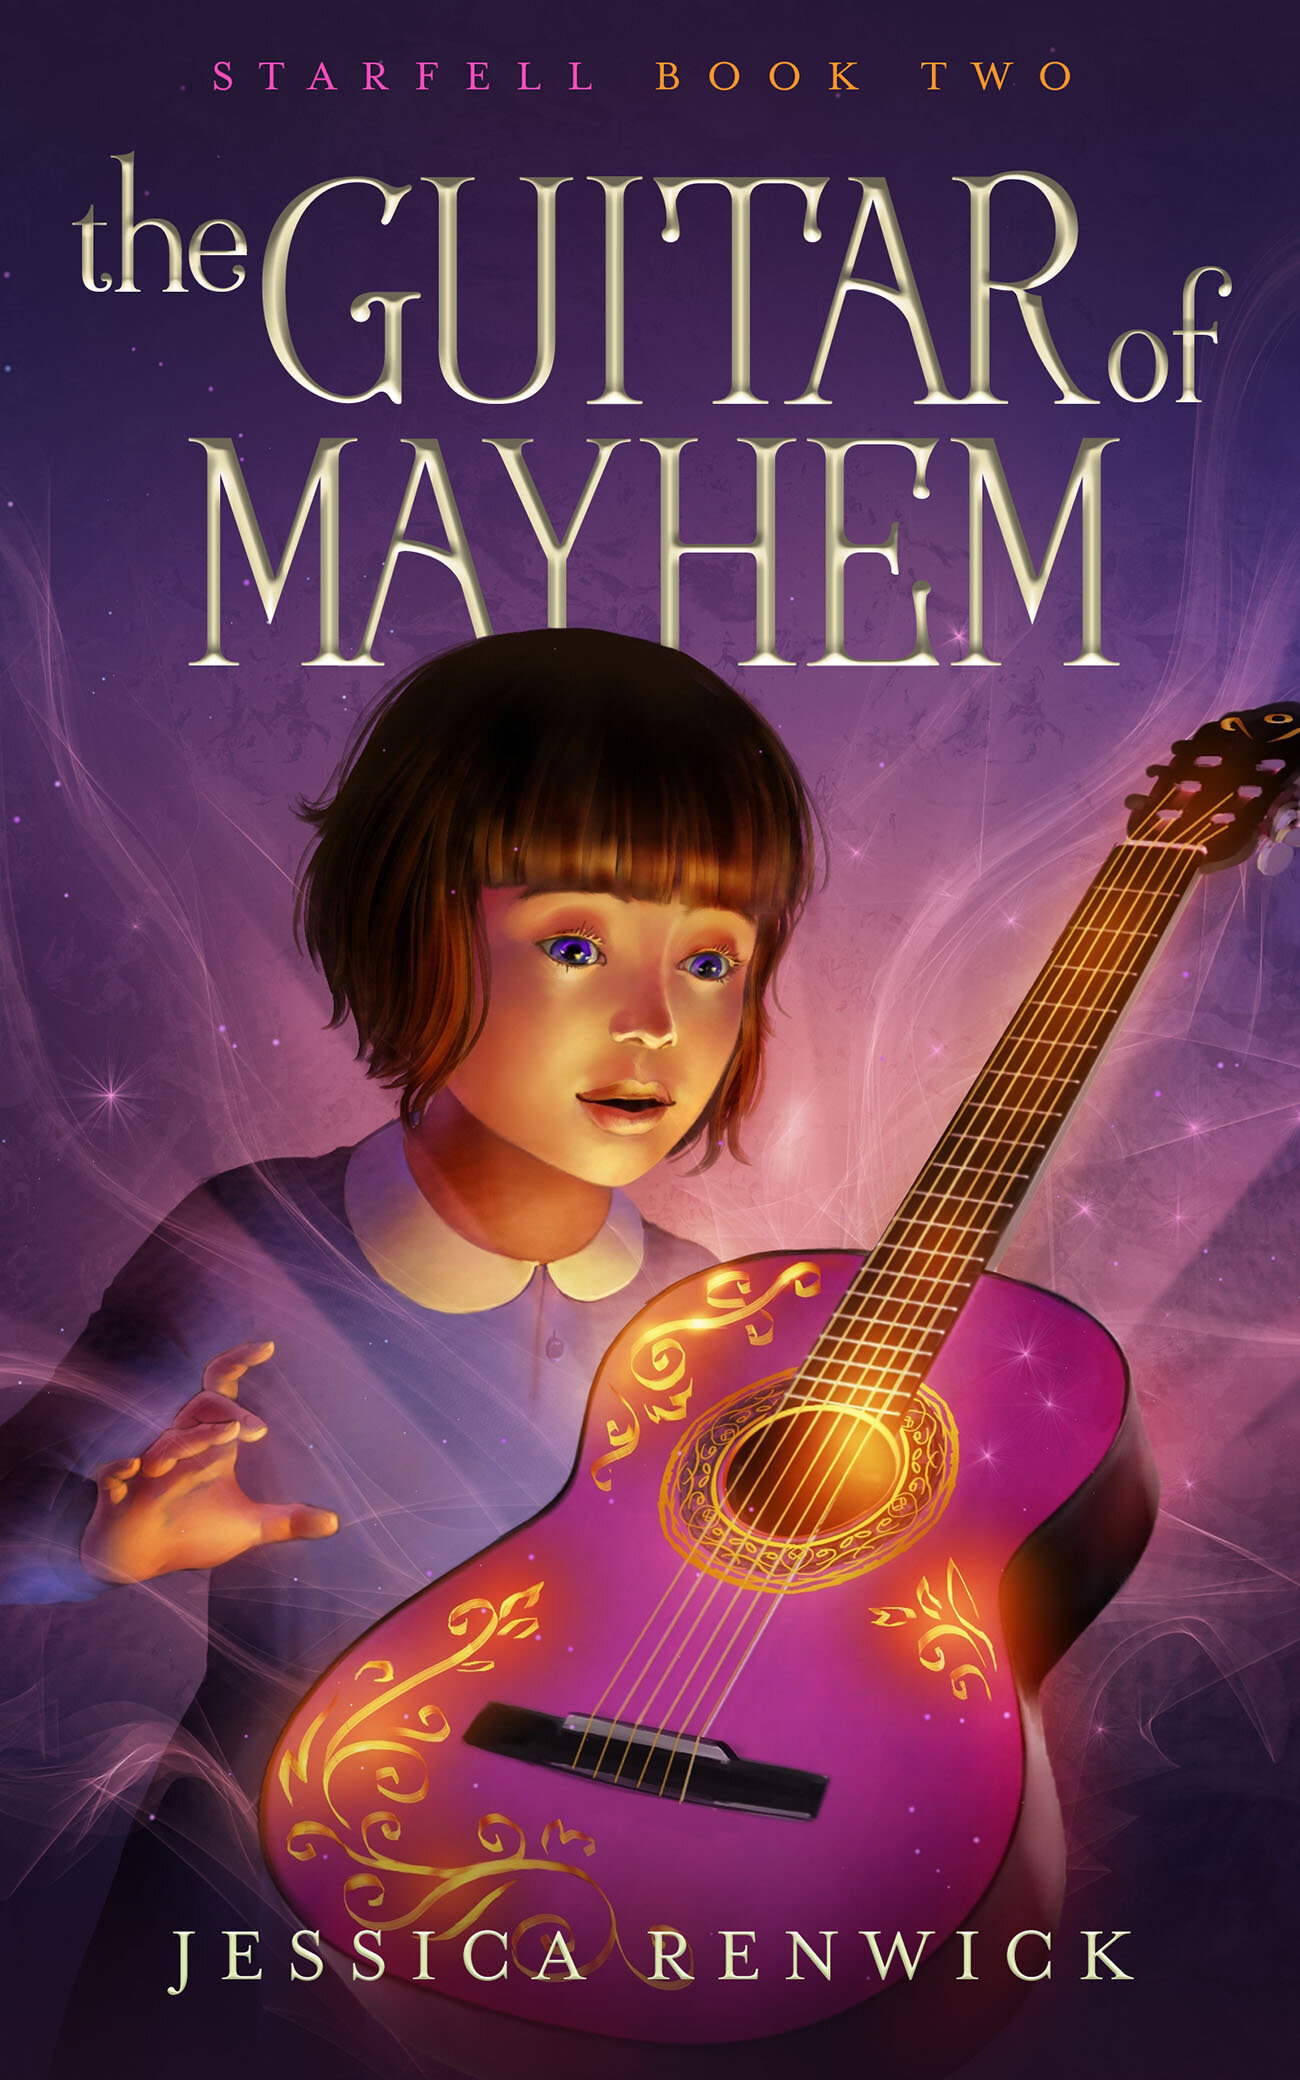 The Guitar of Mayhem  by Jessica Renwick. Middle Grade Fantasy.